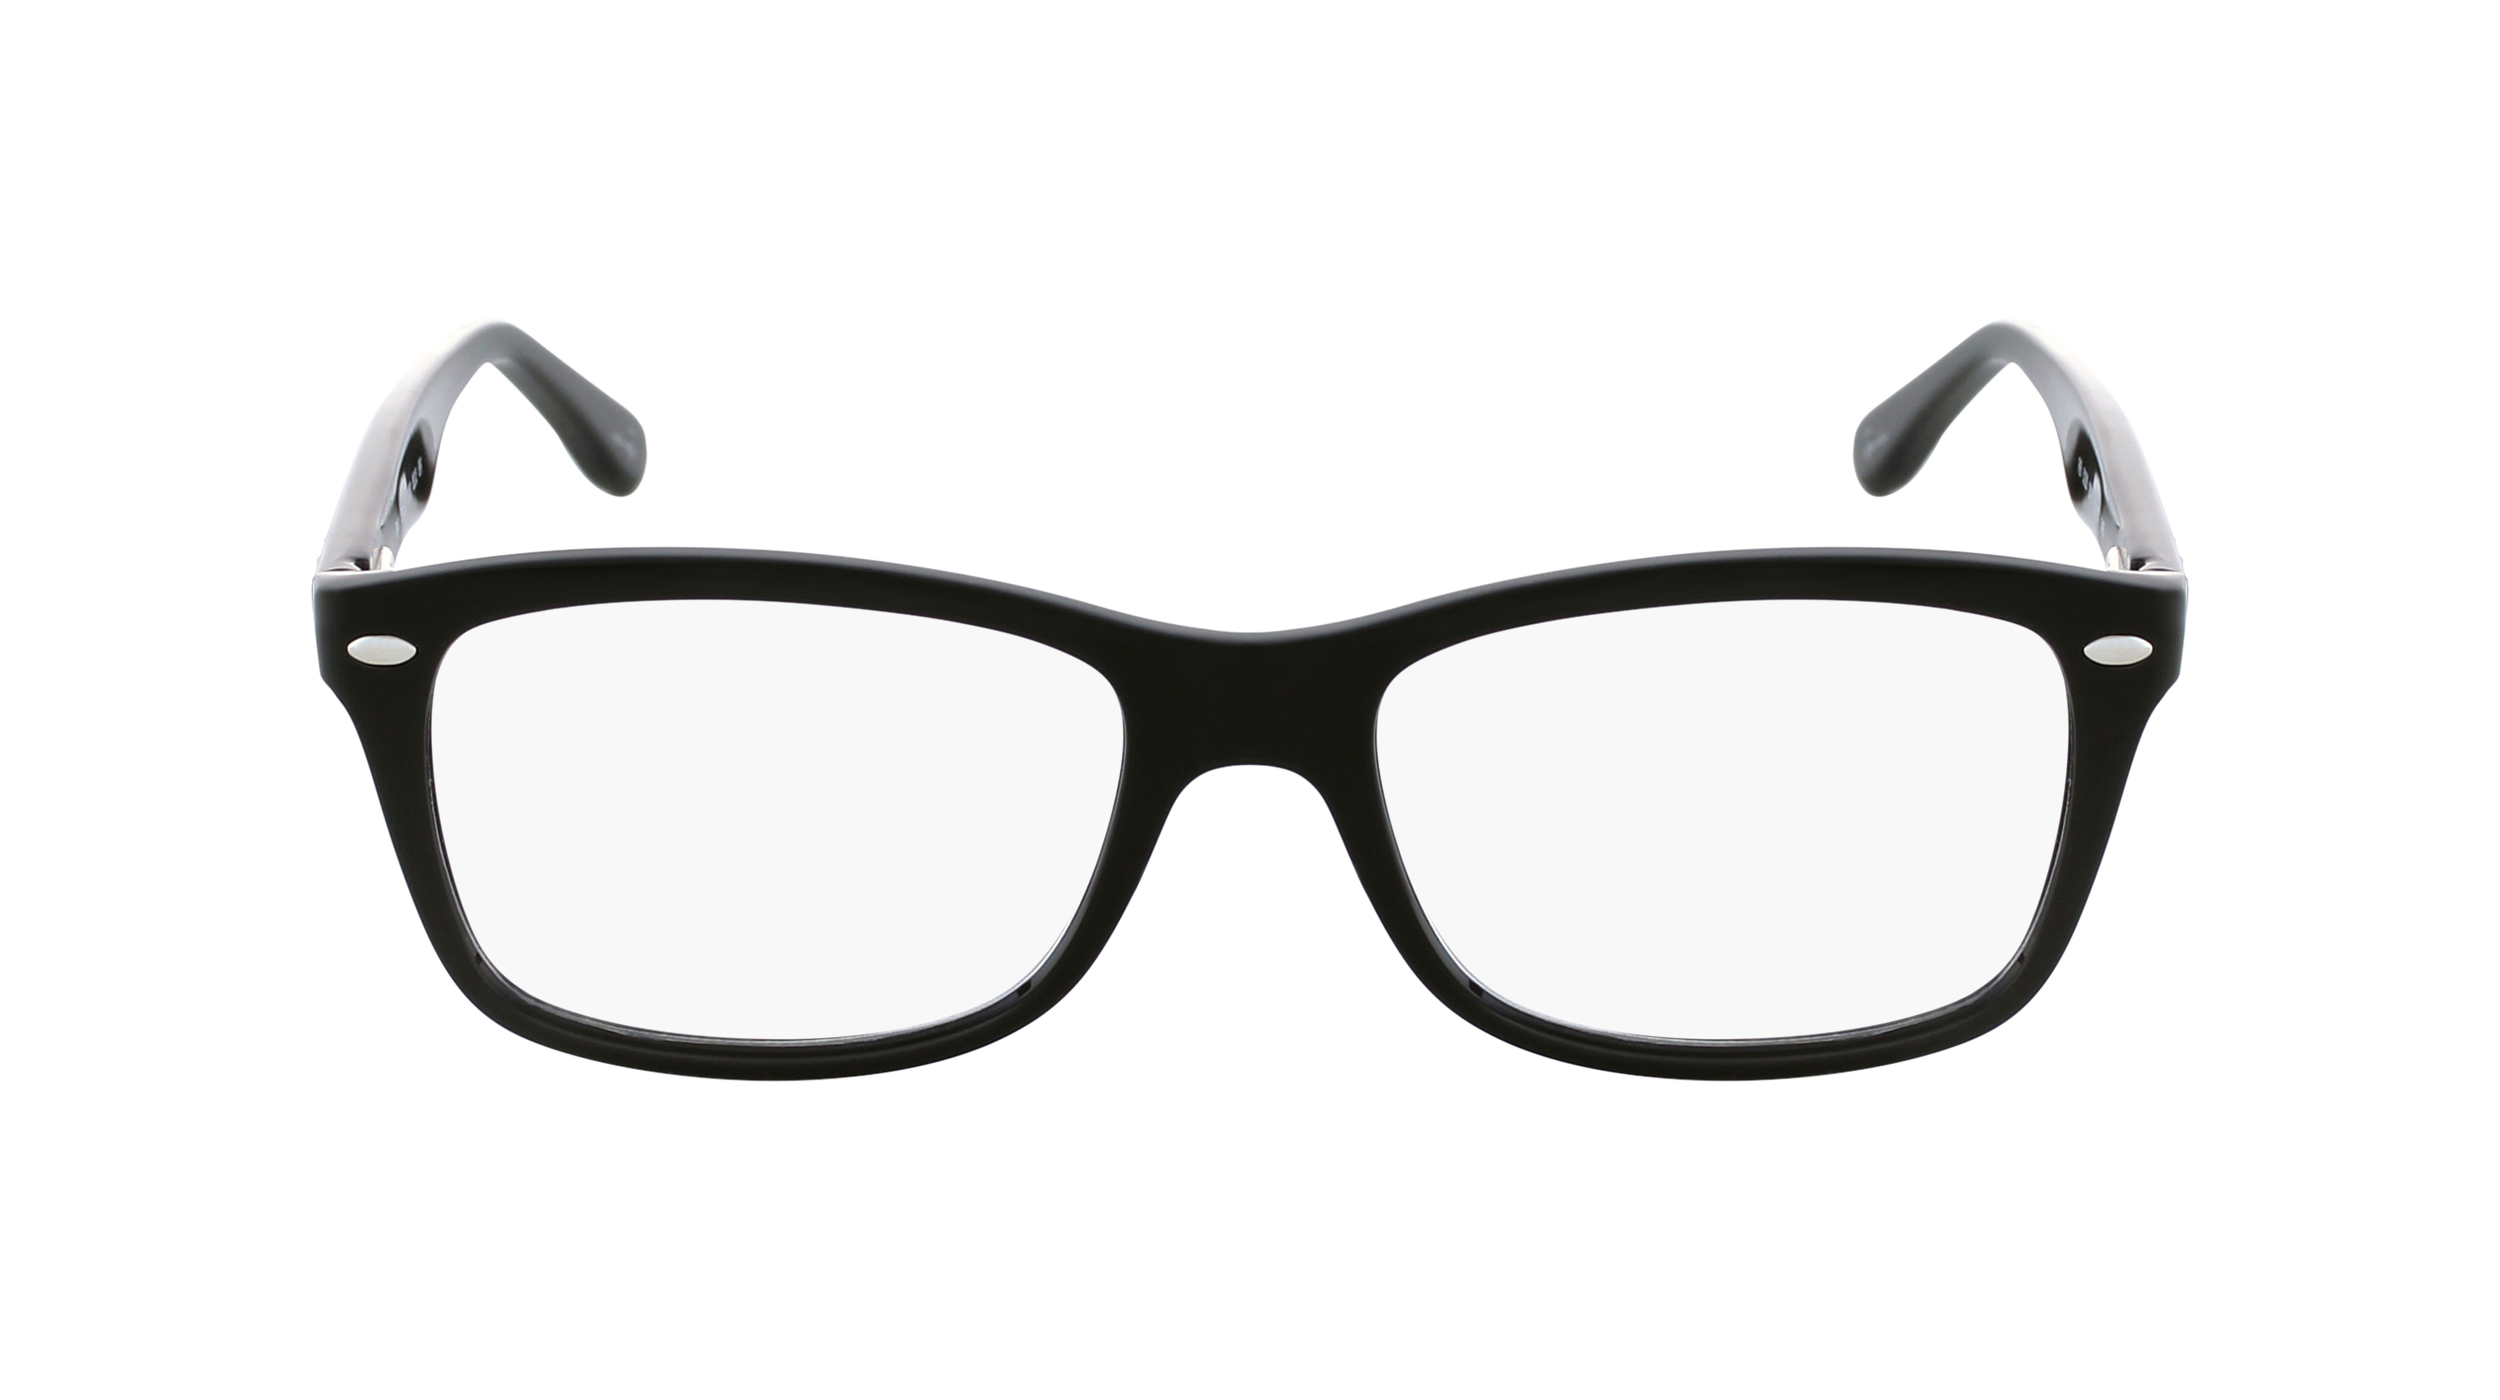 Tulsi enterprise spectacles and. Sunglasses clipart spec frame